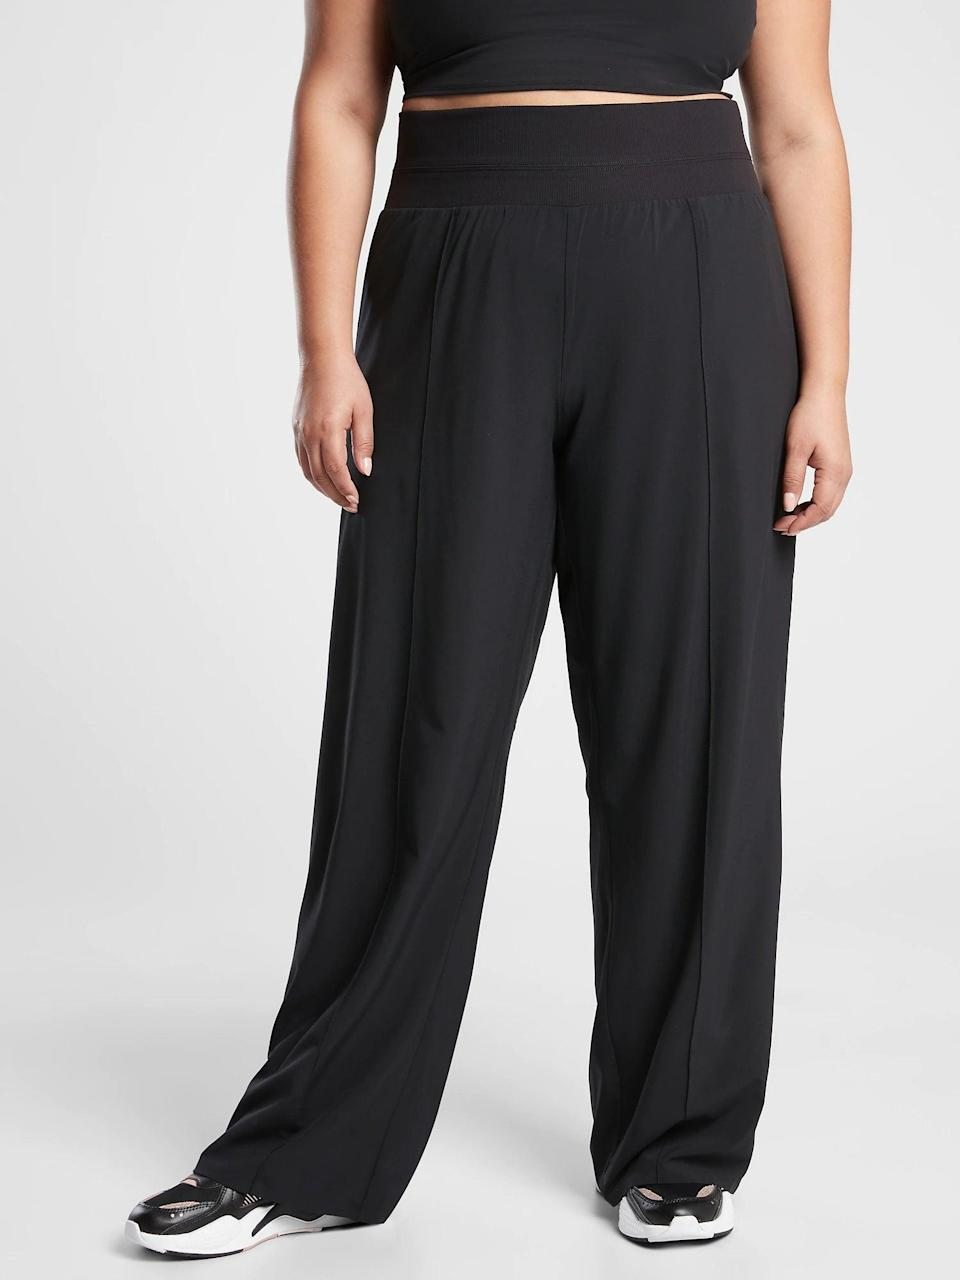 """<h2>Athleta Nolita Wide Leg</h2><br>Wide-legged cuts are an underrated hero when it comes to good travel pants. They offer some additional circulation for when you and your partner are fighting over the A/C knobs during a long-distance car drive, and they allow your legs to feel a little less restricted. <br><br><em>Shop <strong><a href=""""https://athleta.gap.com/"""" rel=""""nofollow noopener"""" target=""""_blank"""" data-ylk=""""slk:Athleta"""" class=""""link rapid-noclick-resp"""">Athleta</a></strong></em><br><br><strong>Athleta</strong> Nolita Wide Leg, $, available at <a href=""""https://go.skimresources.com/?id=30283X879131&url=https%3A%2F%2Fathleta.gap.com%2Fbrowse%2Fproduct.do%3Fpid%3D657665002%26pcid%3D999%26vid%3D1%26%26searchText%3Dtravel%23pdp-page-content"""" rel=""""nofollow noopener"""" target=""""_blank"""" data-ylk=""""slk:Athleta"""" class=""""link rapid-noclick-resp"""">Athleta</a>"""